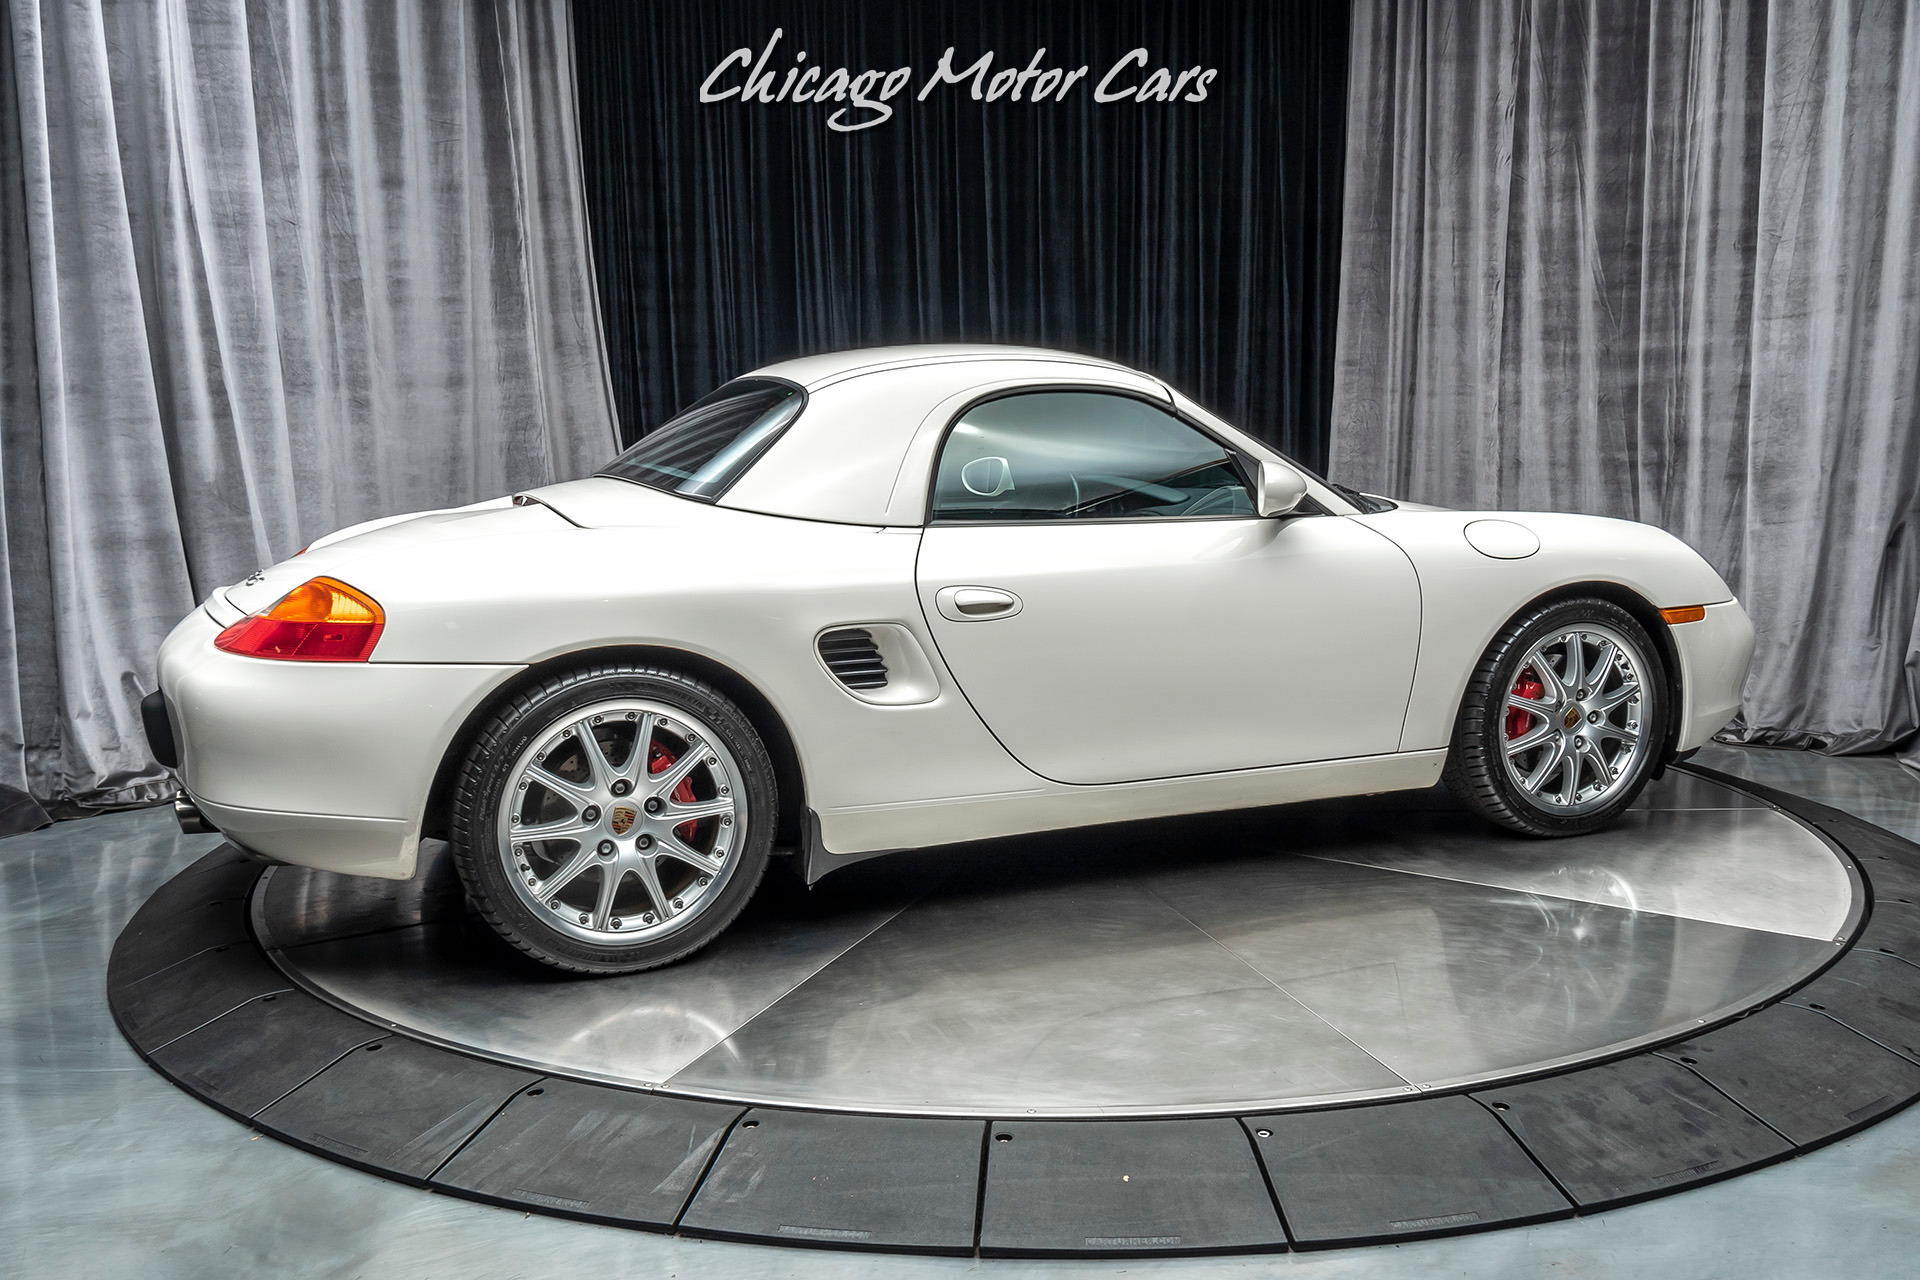 Used-2001-Porsche-Boxster-S-Hardtop-Convertible-6-Speed-Manual-MSRP-59K